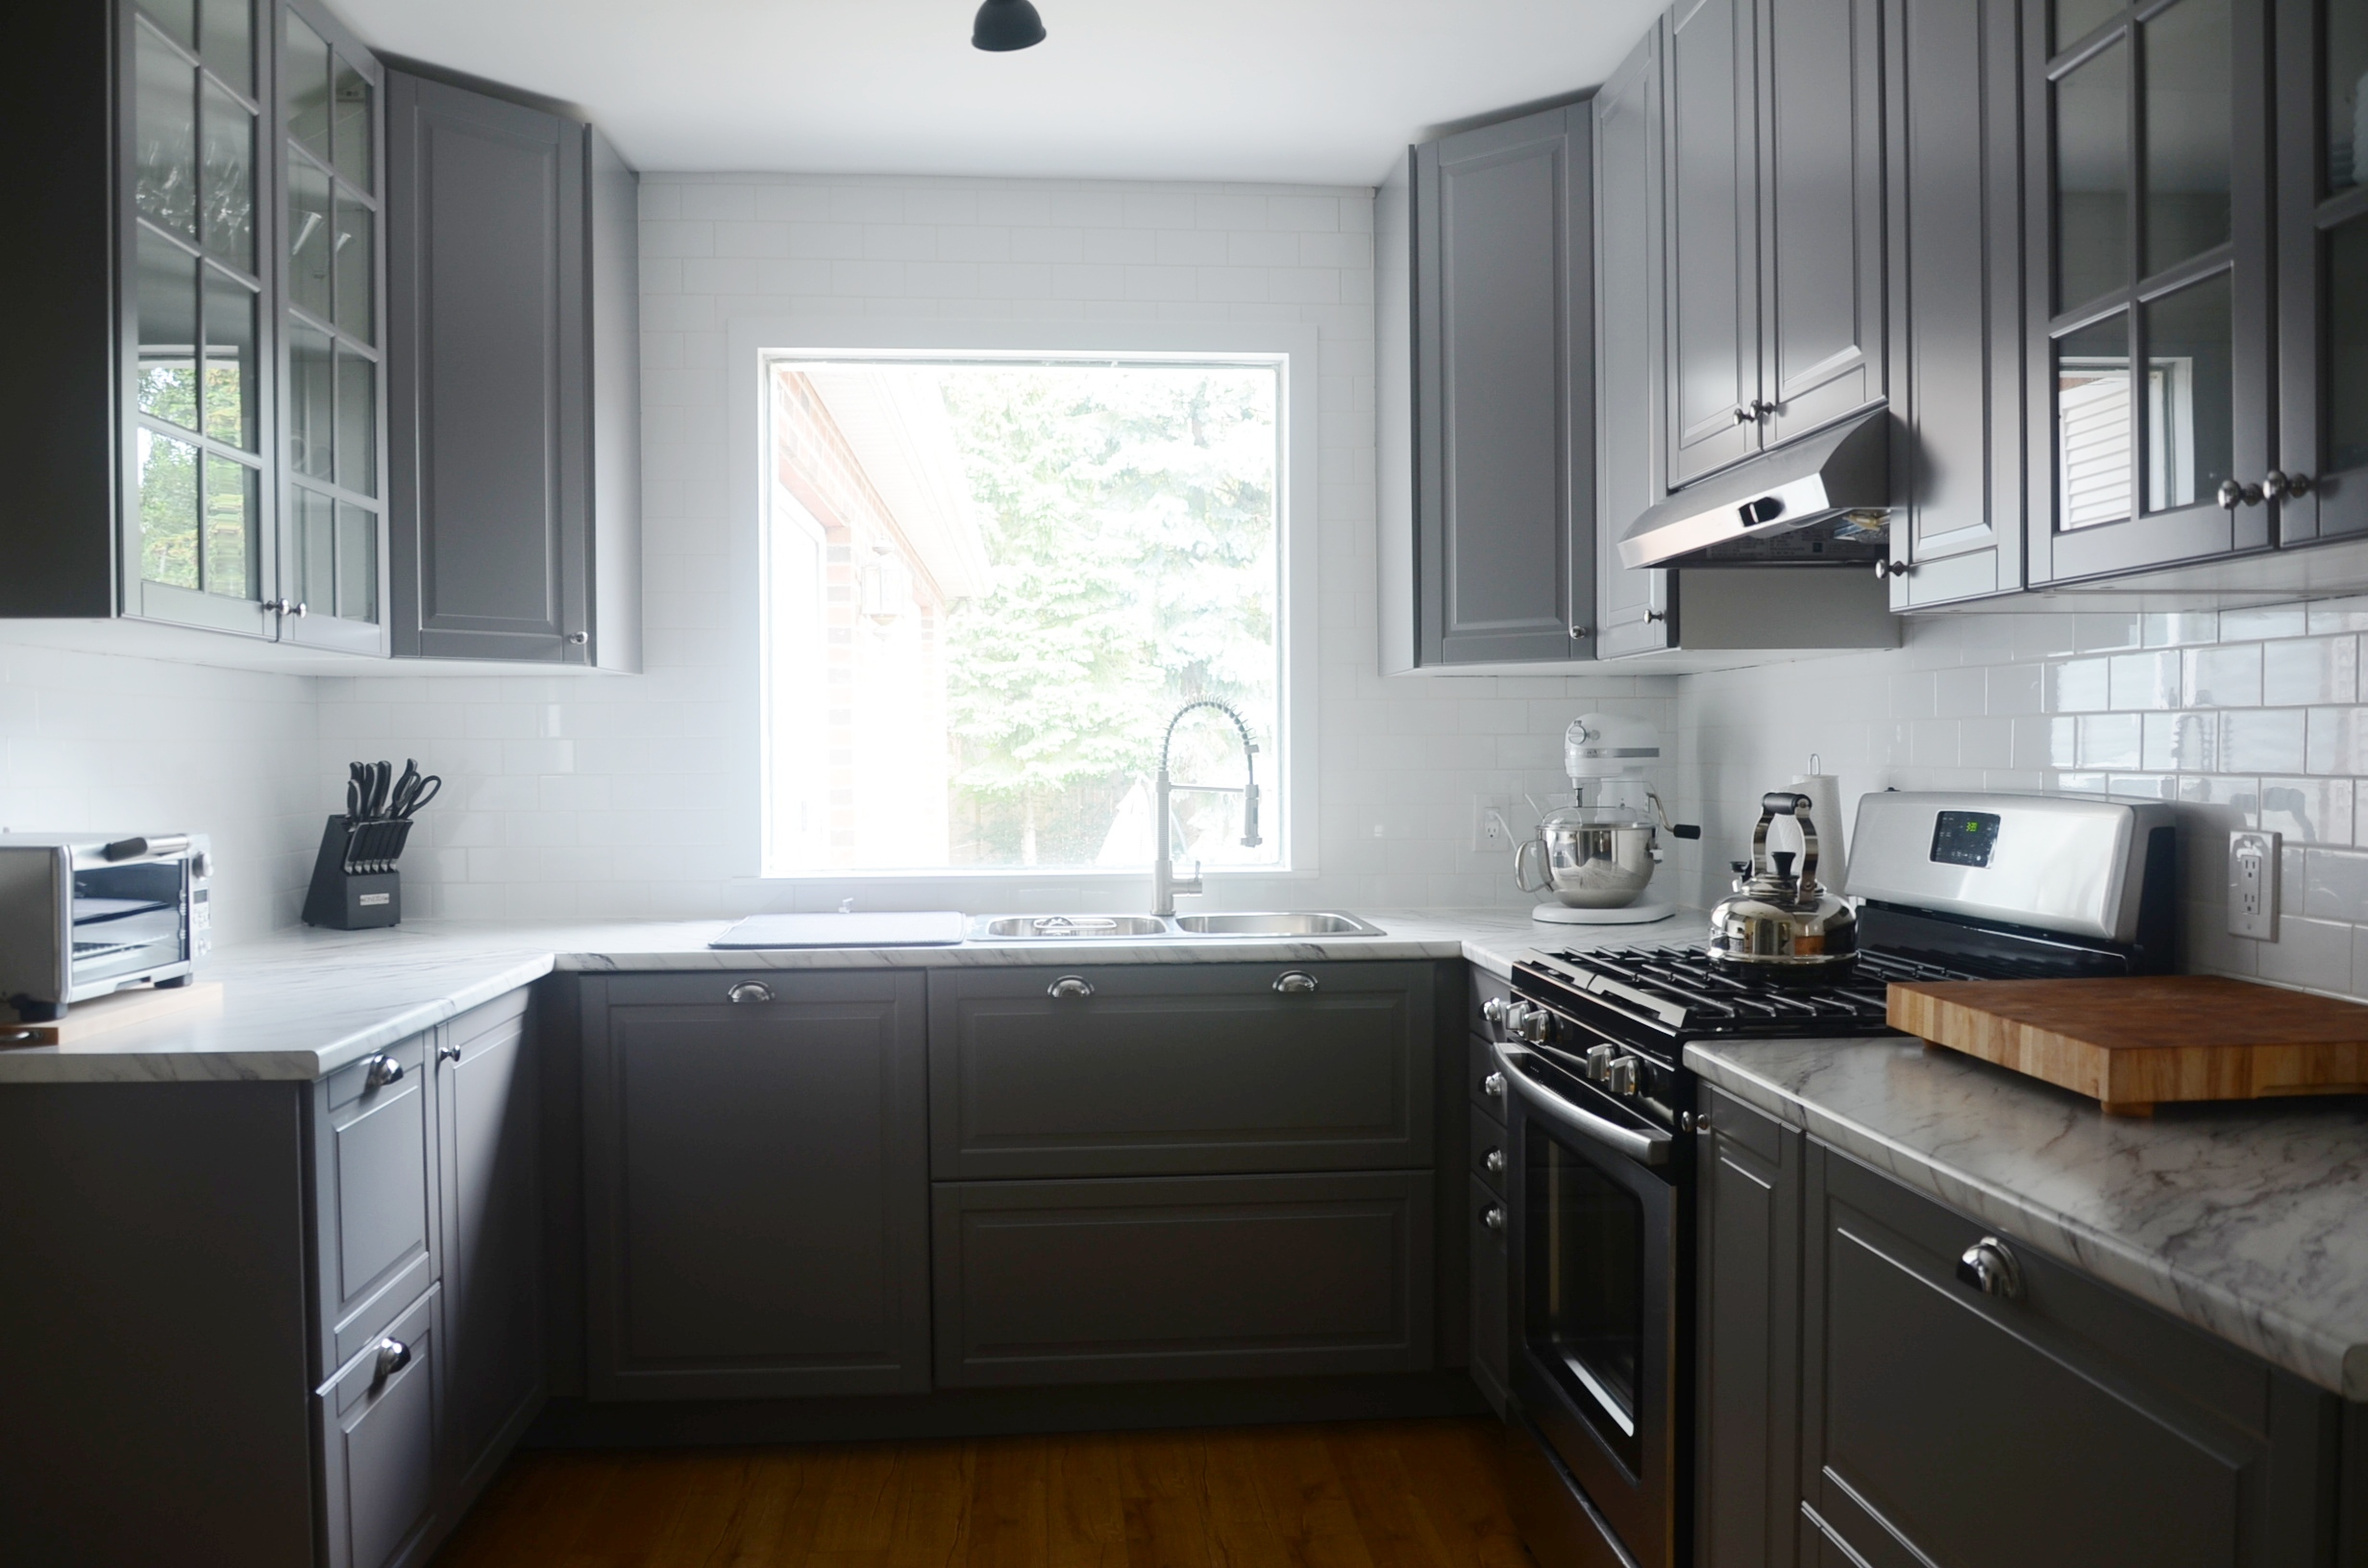 modern ikea kitchen renovation ikea kitchen remodel cost When I interviewed Anthony he and his wife had been cooking in the kitchen for three weeks and were deeply in love